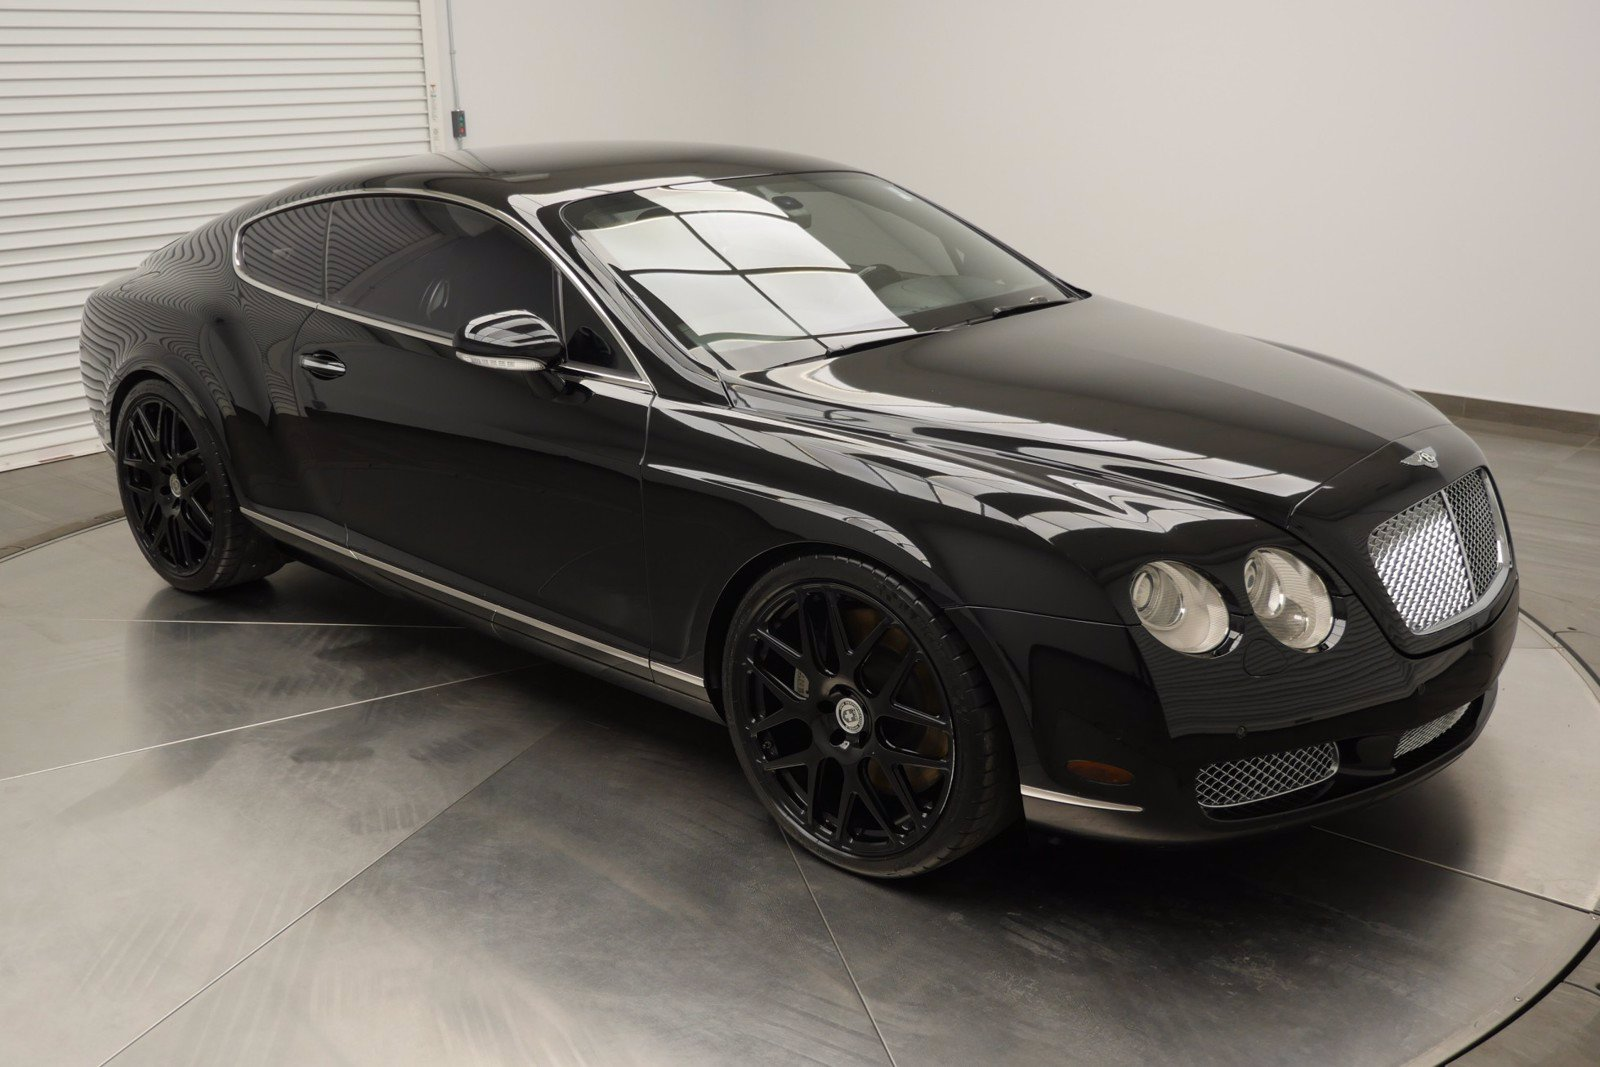 used 2007 Bentley Continental GT car, priced at $62,980